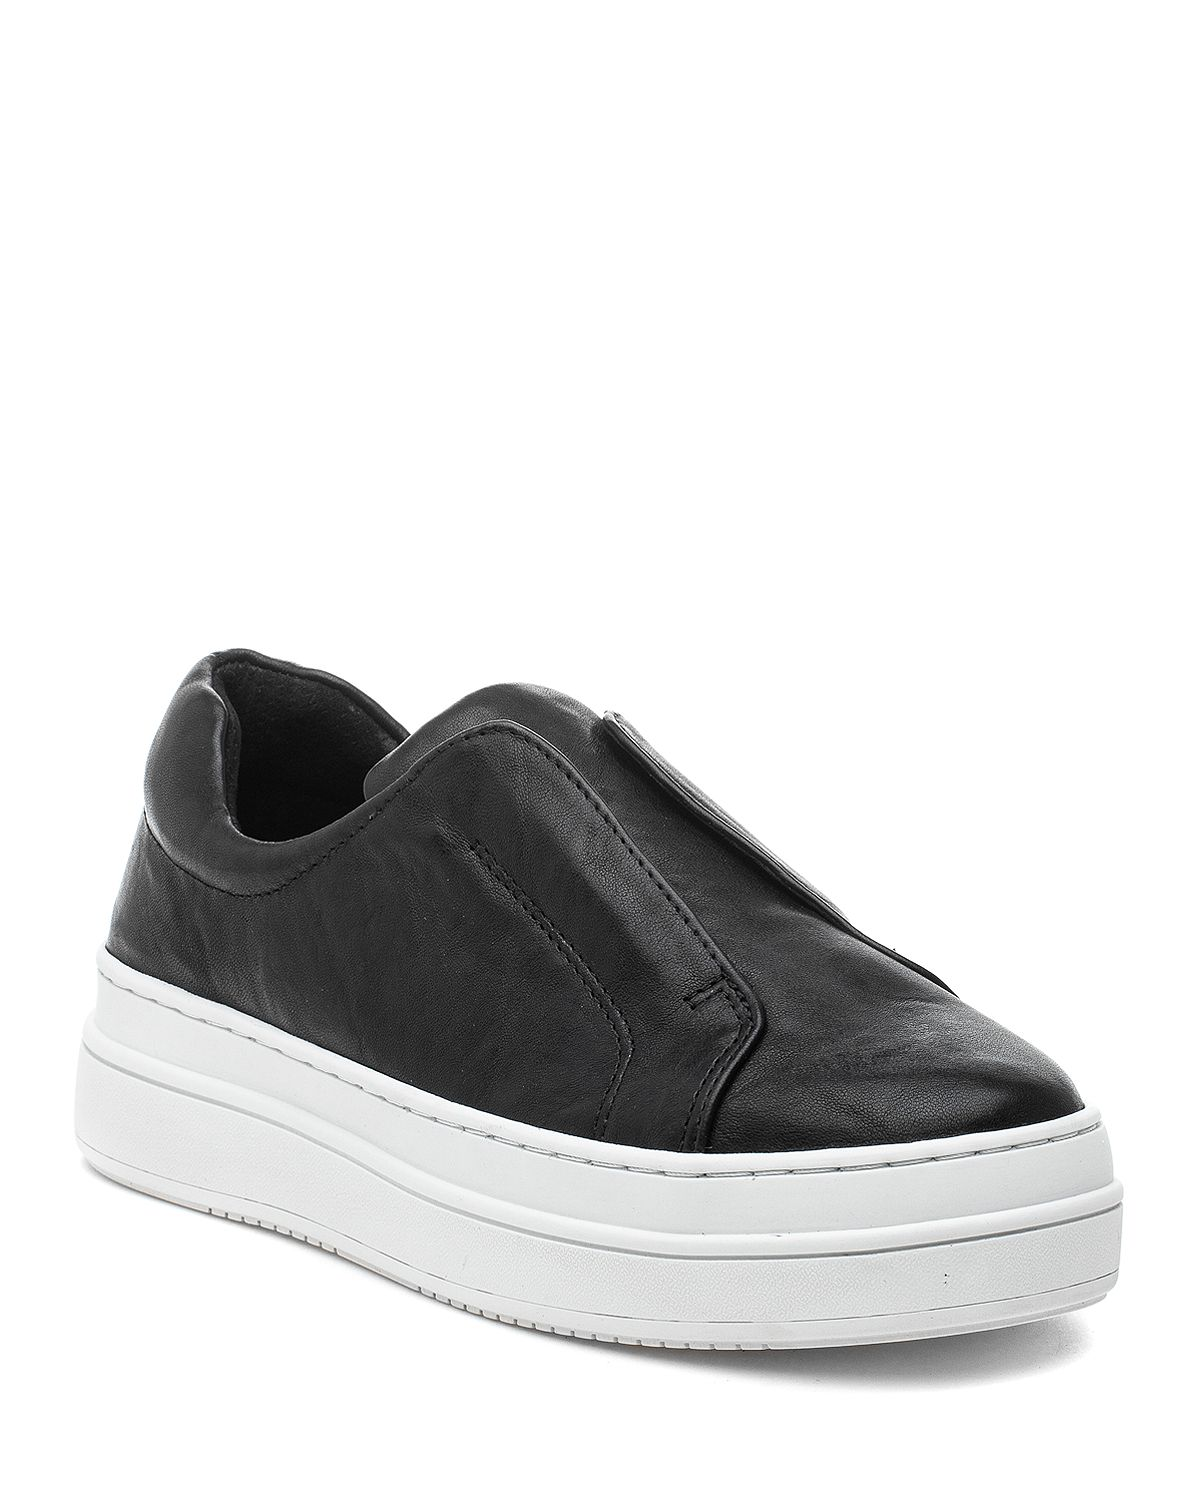 J/Slides - Women's Noel Slip On Leather Sneakers